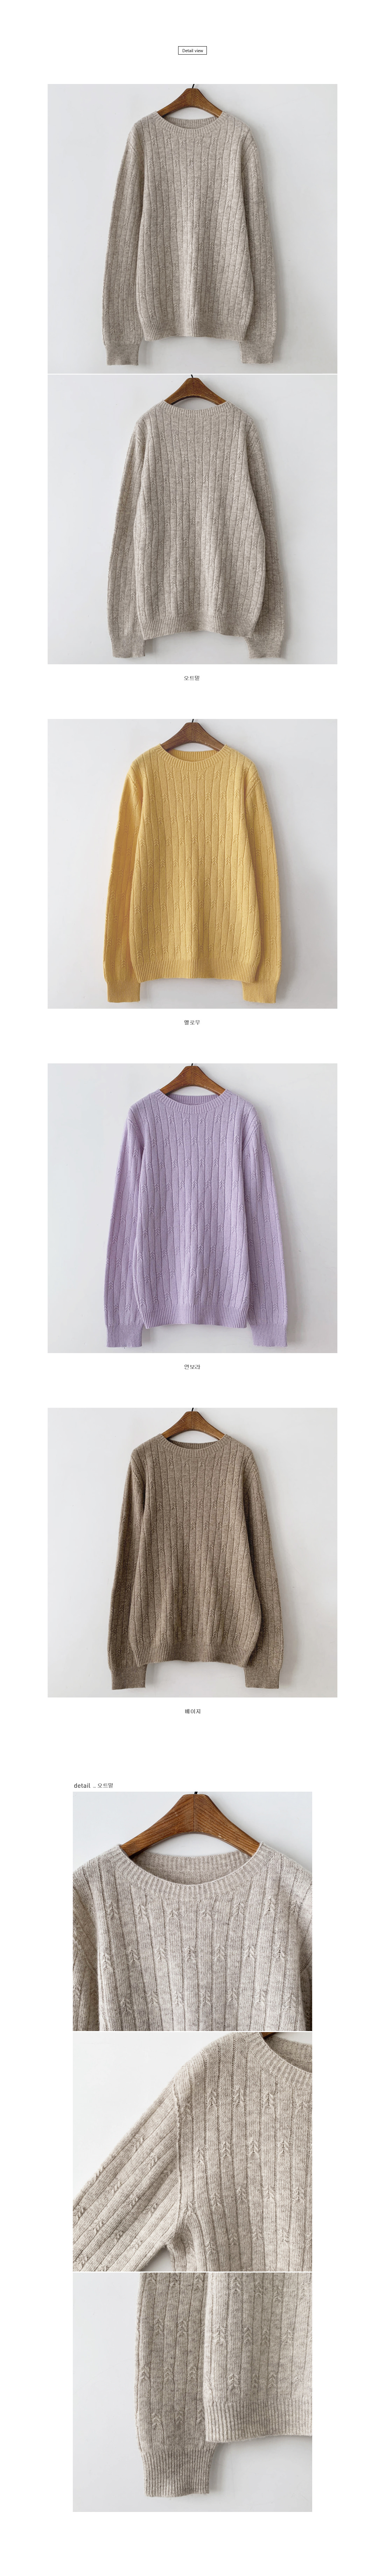 K Whole garment round knit